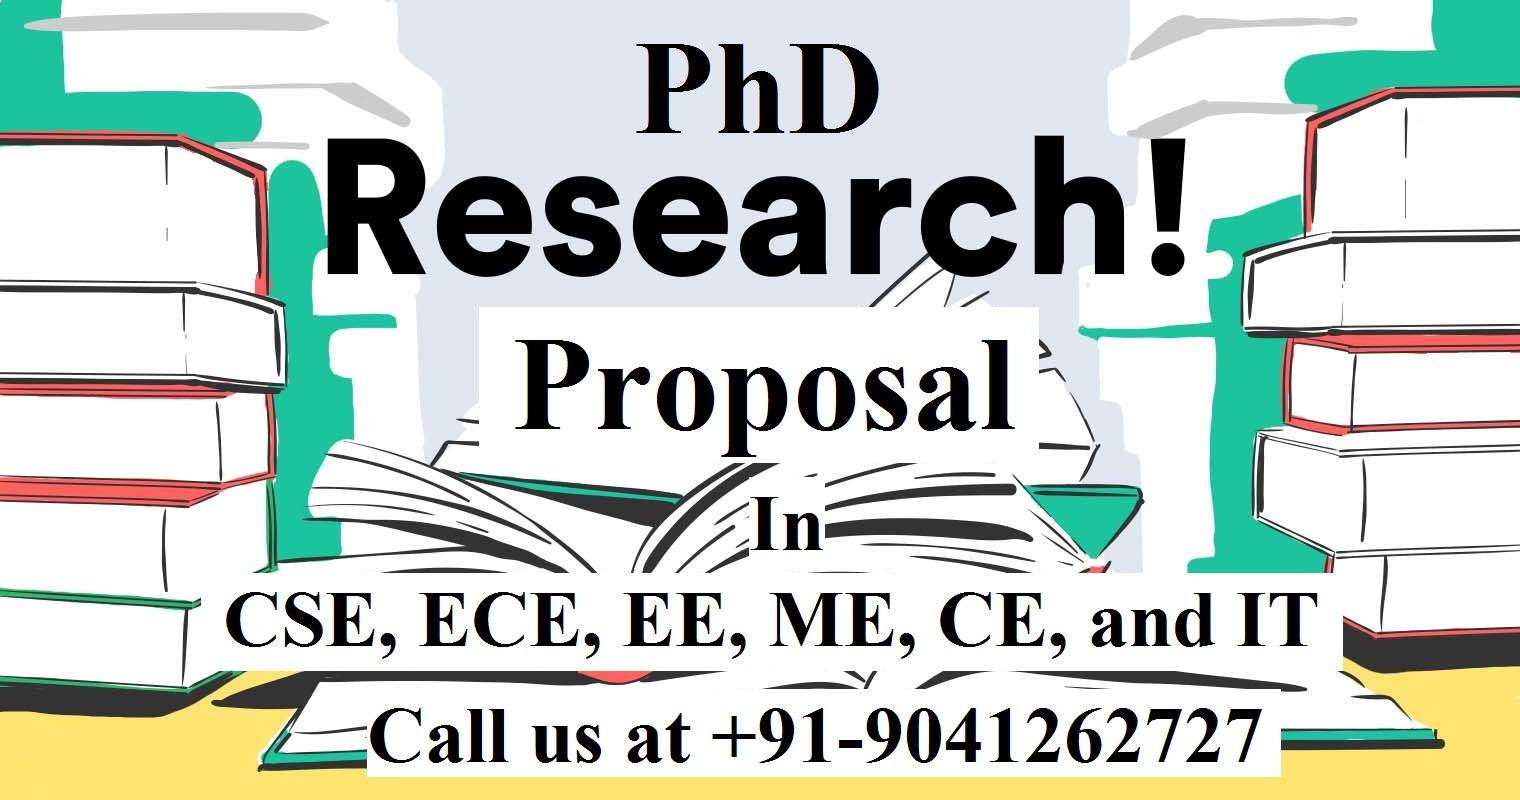 PhD Research Proposal in CSE, ECE, EE, ME, CE, and IT